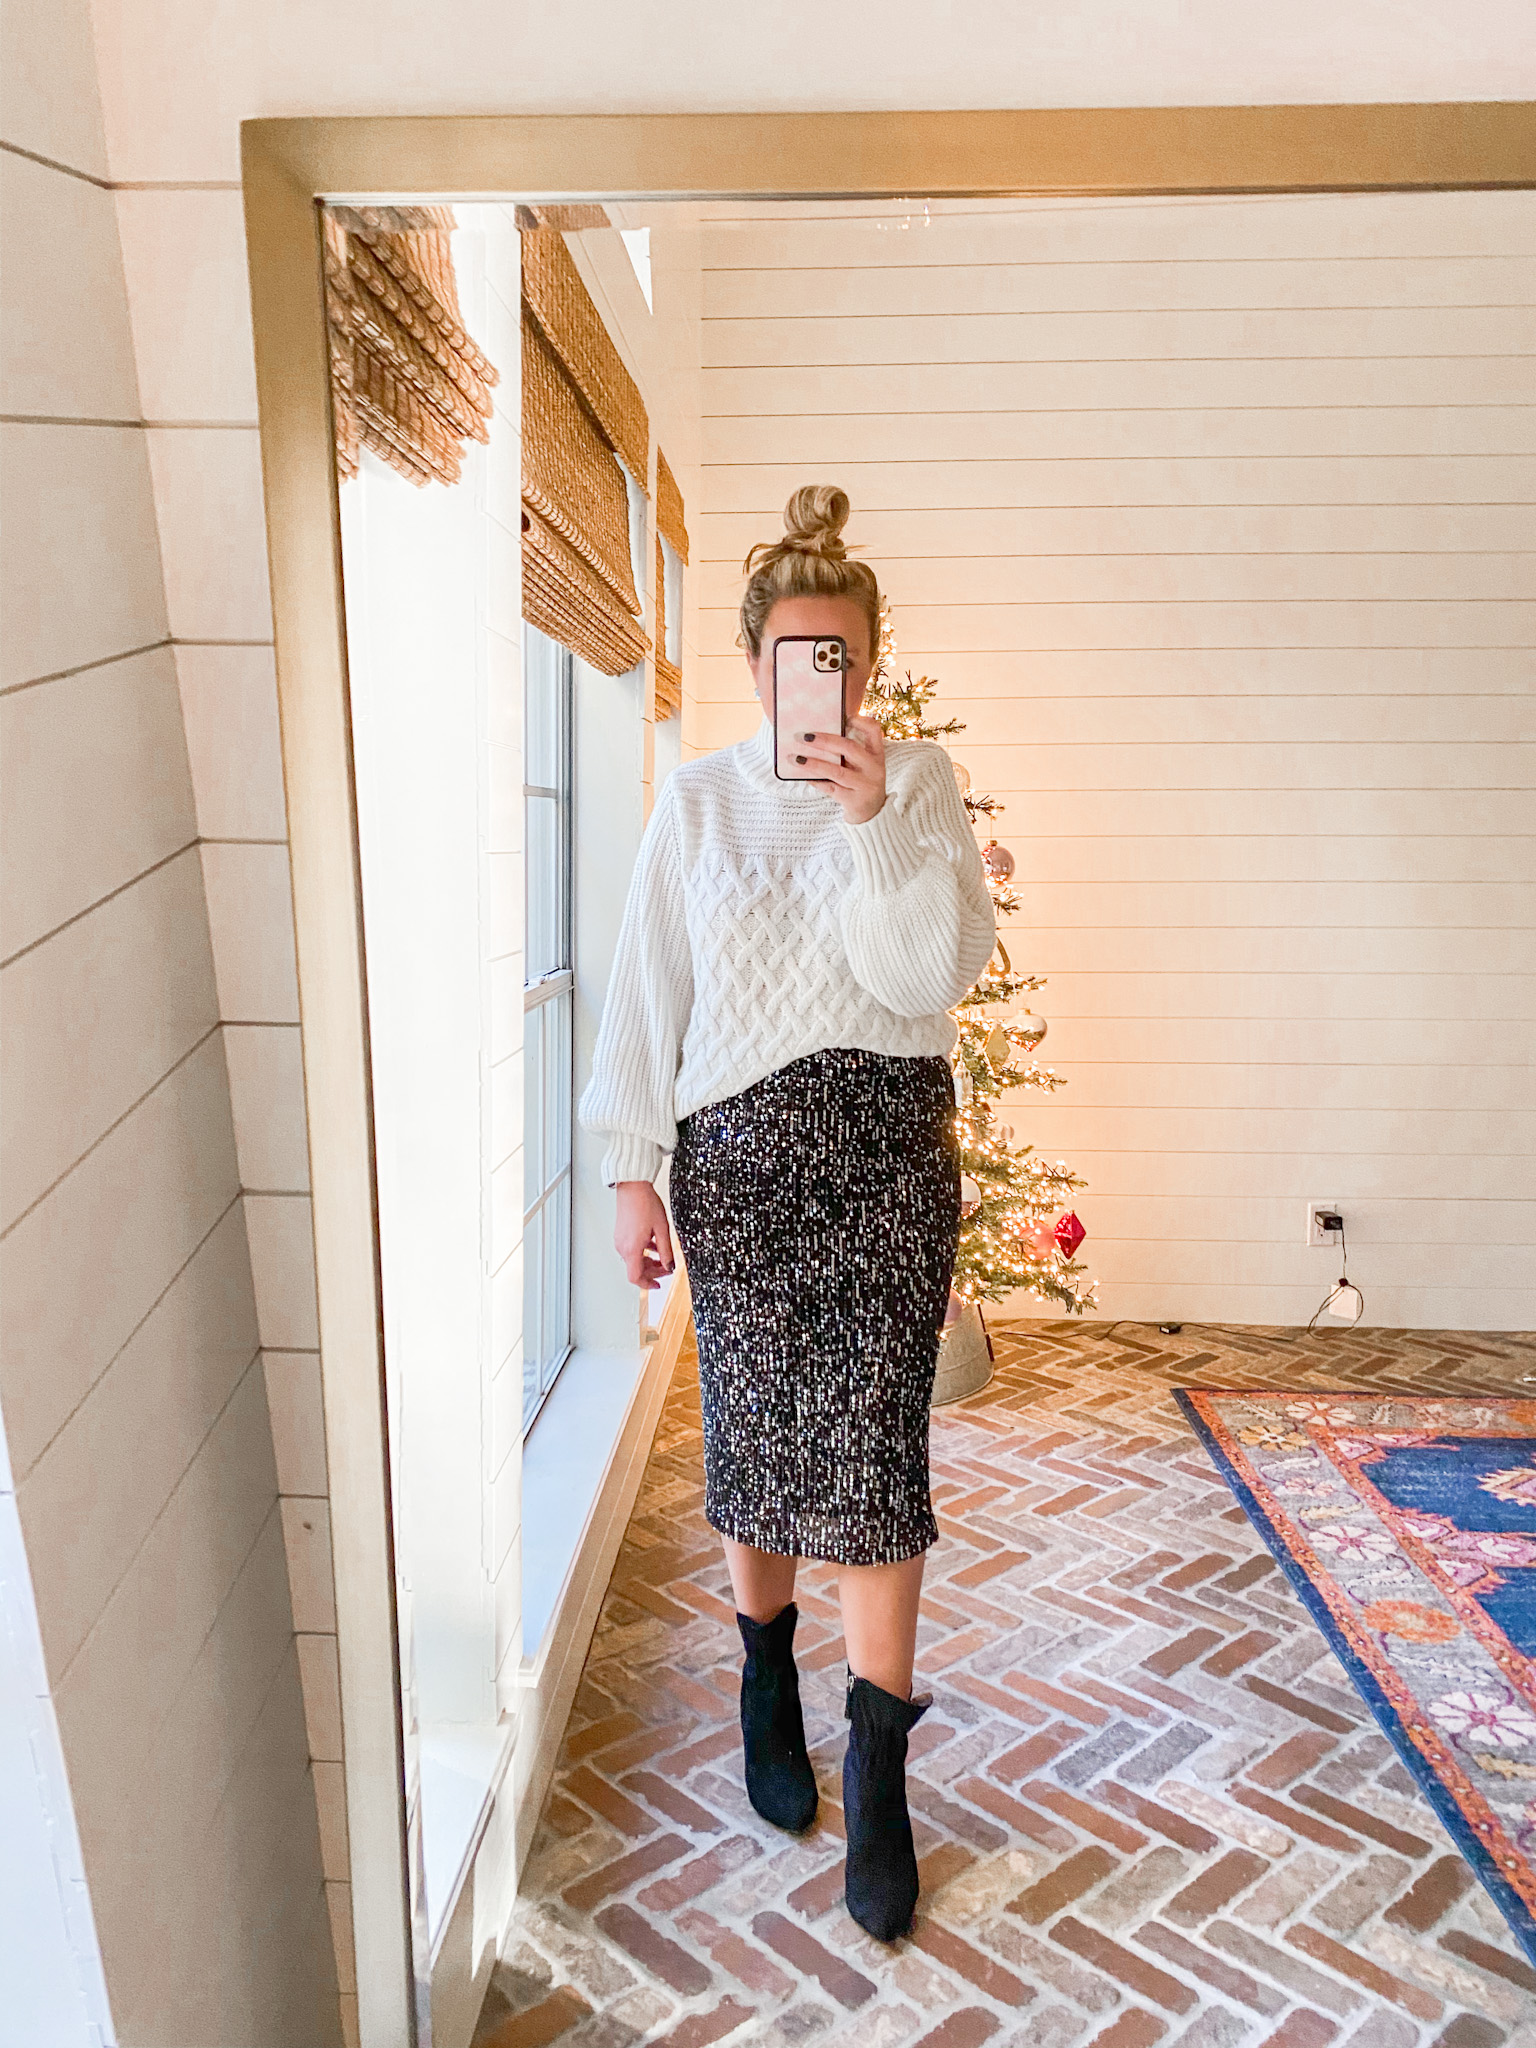 Walmart Womens Clothes by popular Houston fashion blog, Fancy Ashley: image of a woman wearing a Walmart Time and Tru Women's Chenille Sweater Walmart Scoop Sequin skirt, and Walmart Scoop black suede booties.